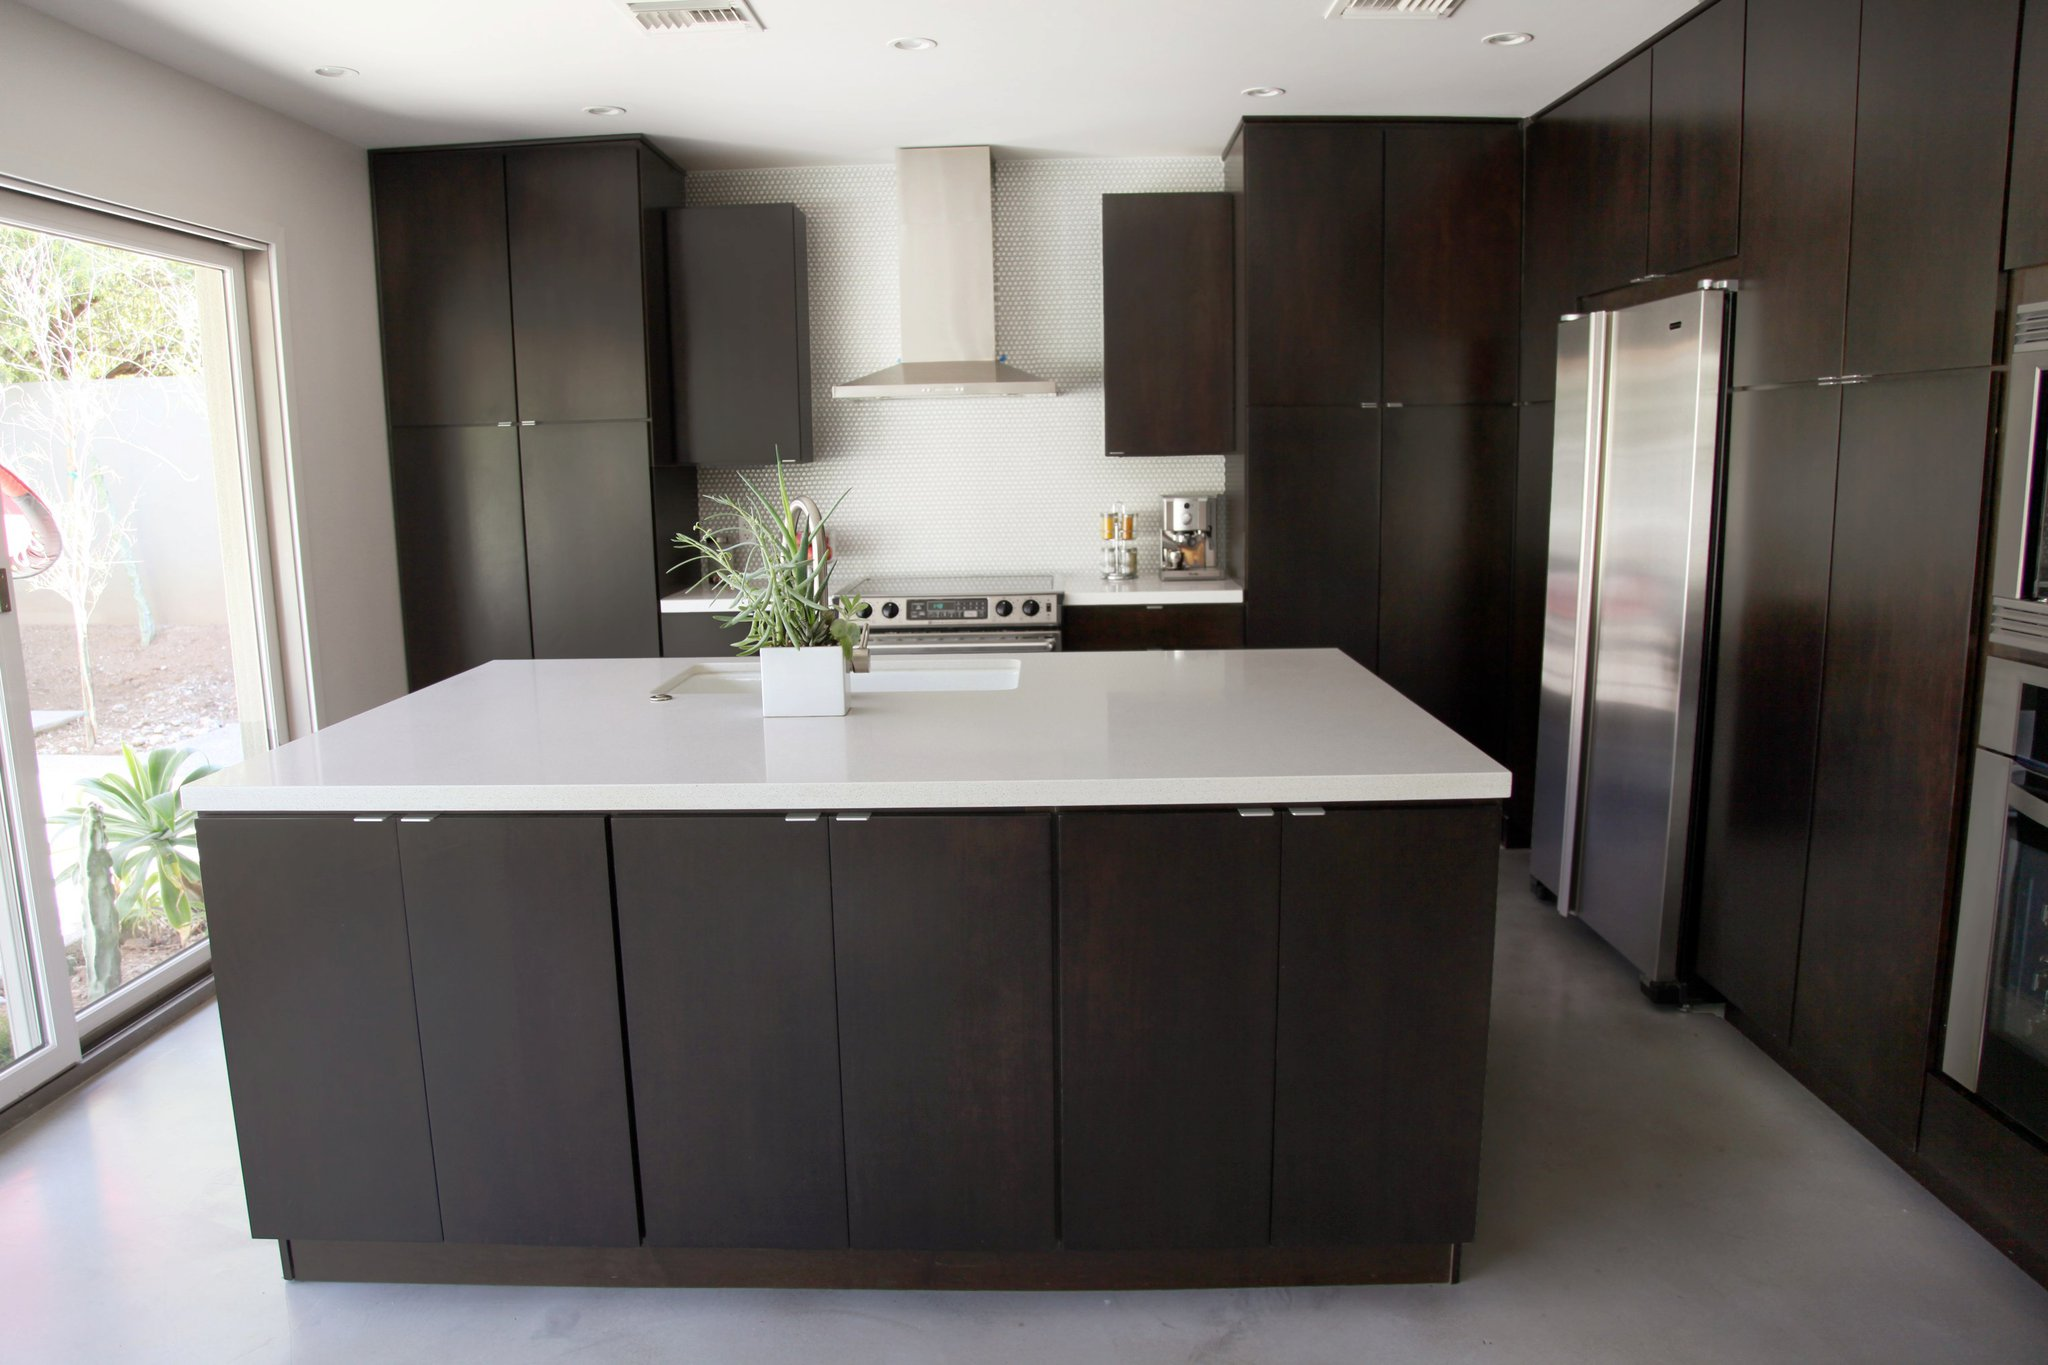 The Home Dedicates Itself To A Clean Crisp Modern Design. Their Finish  Selections Compliment The Cabinets In A Way That Has Proven To Be Very  Popular.